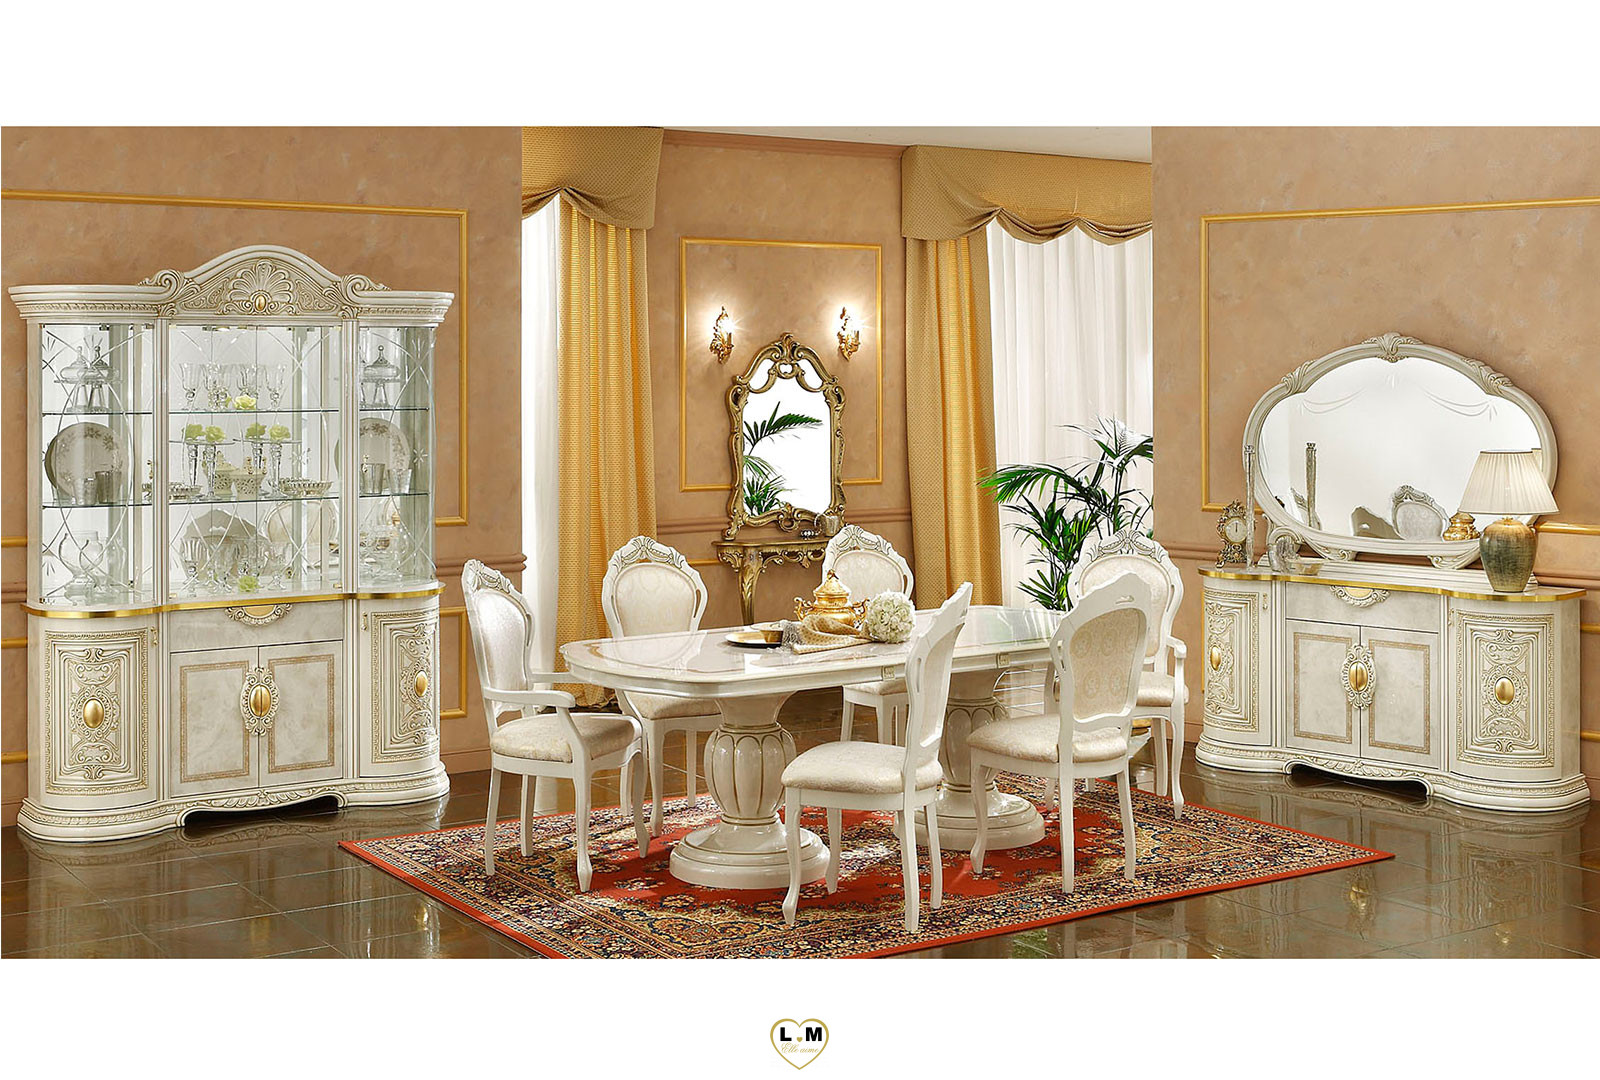 claudius laque ivoire et dore sejour salle a manger baroque l 39 ensemble avec le living 4. Black Bedroom Furniture Sets. Home Design Ideas